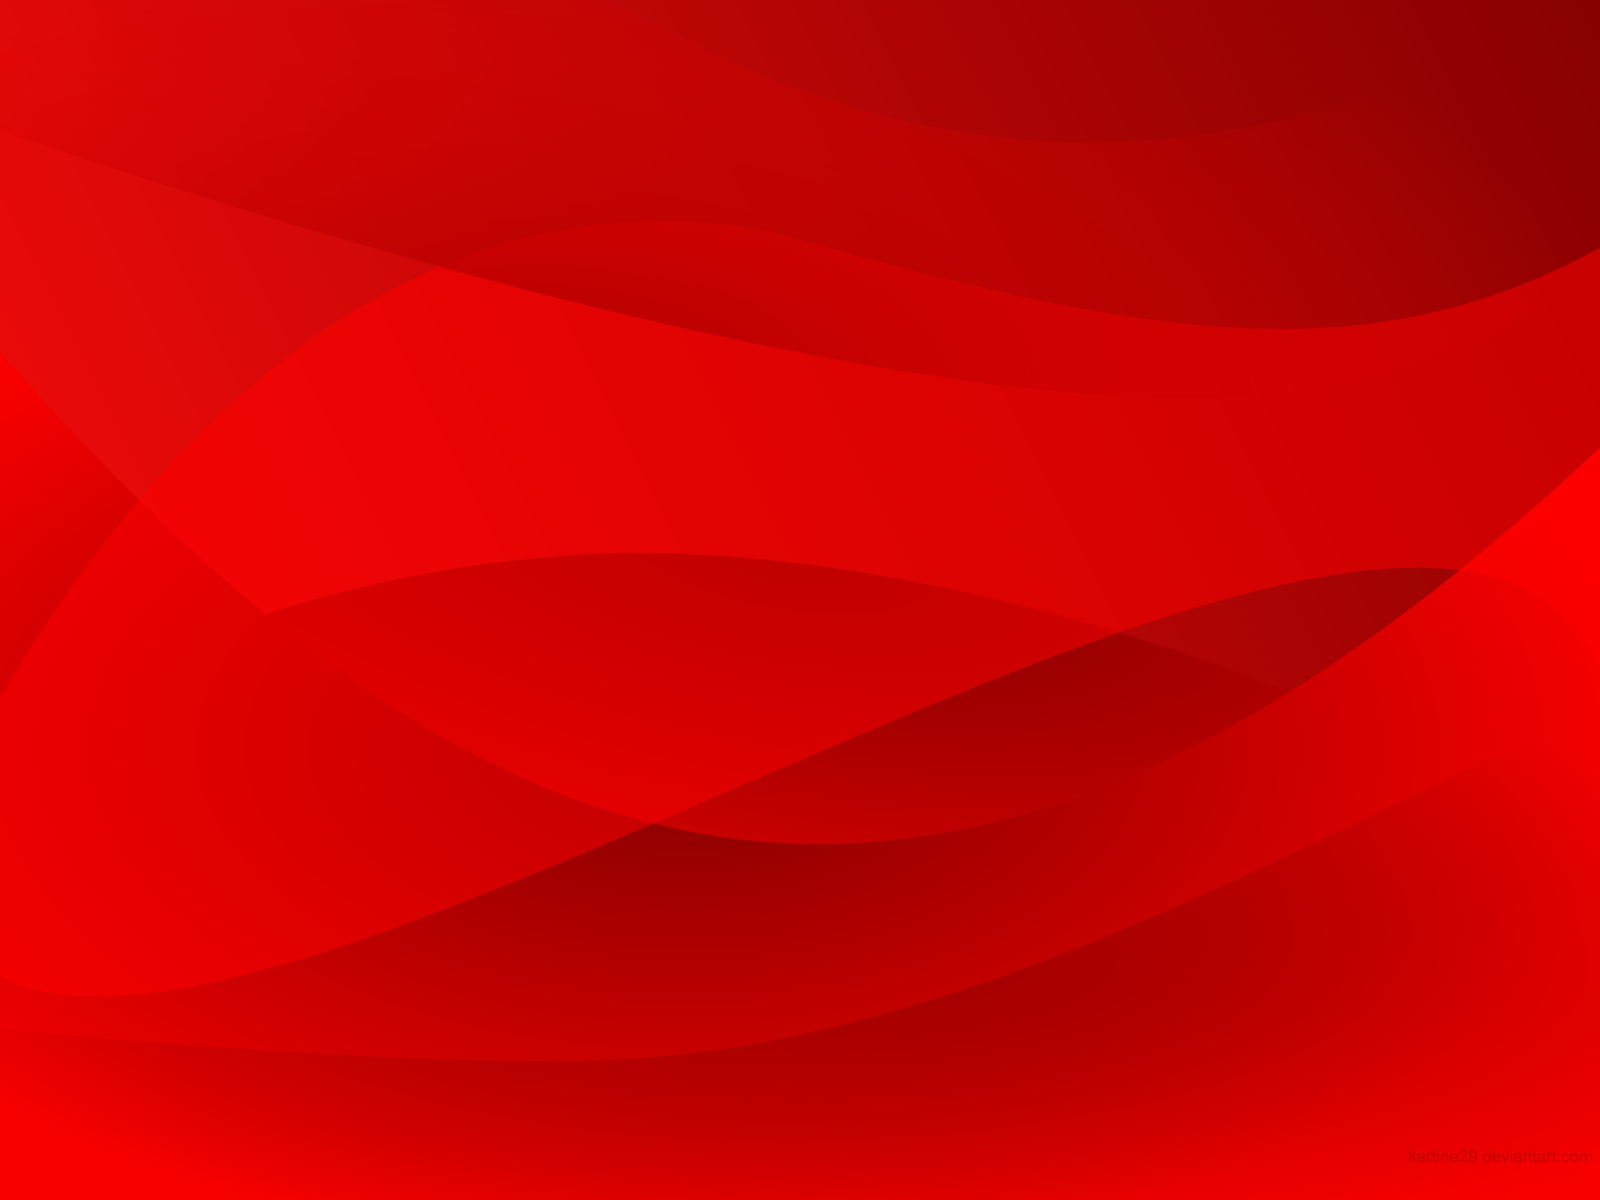 FHDQ Red backgrounds Pictures 163.5 Kb, 7-THemes Graphics